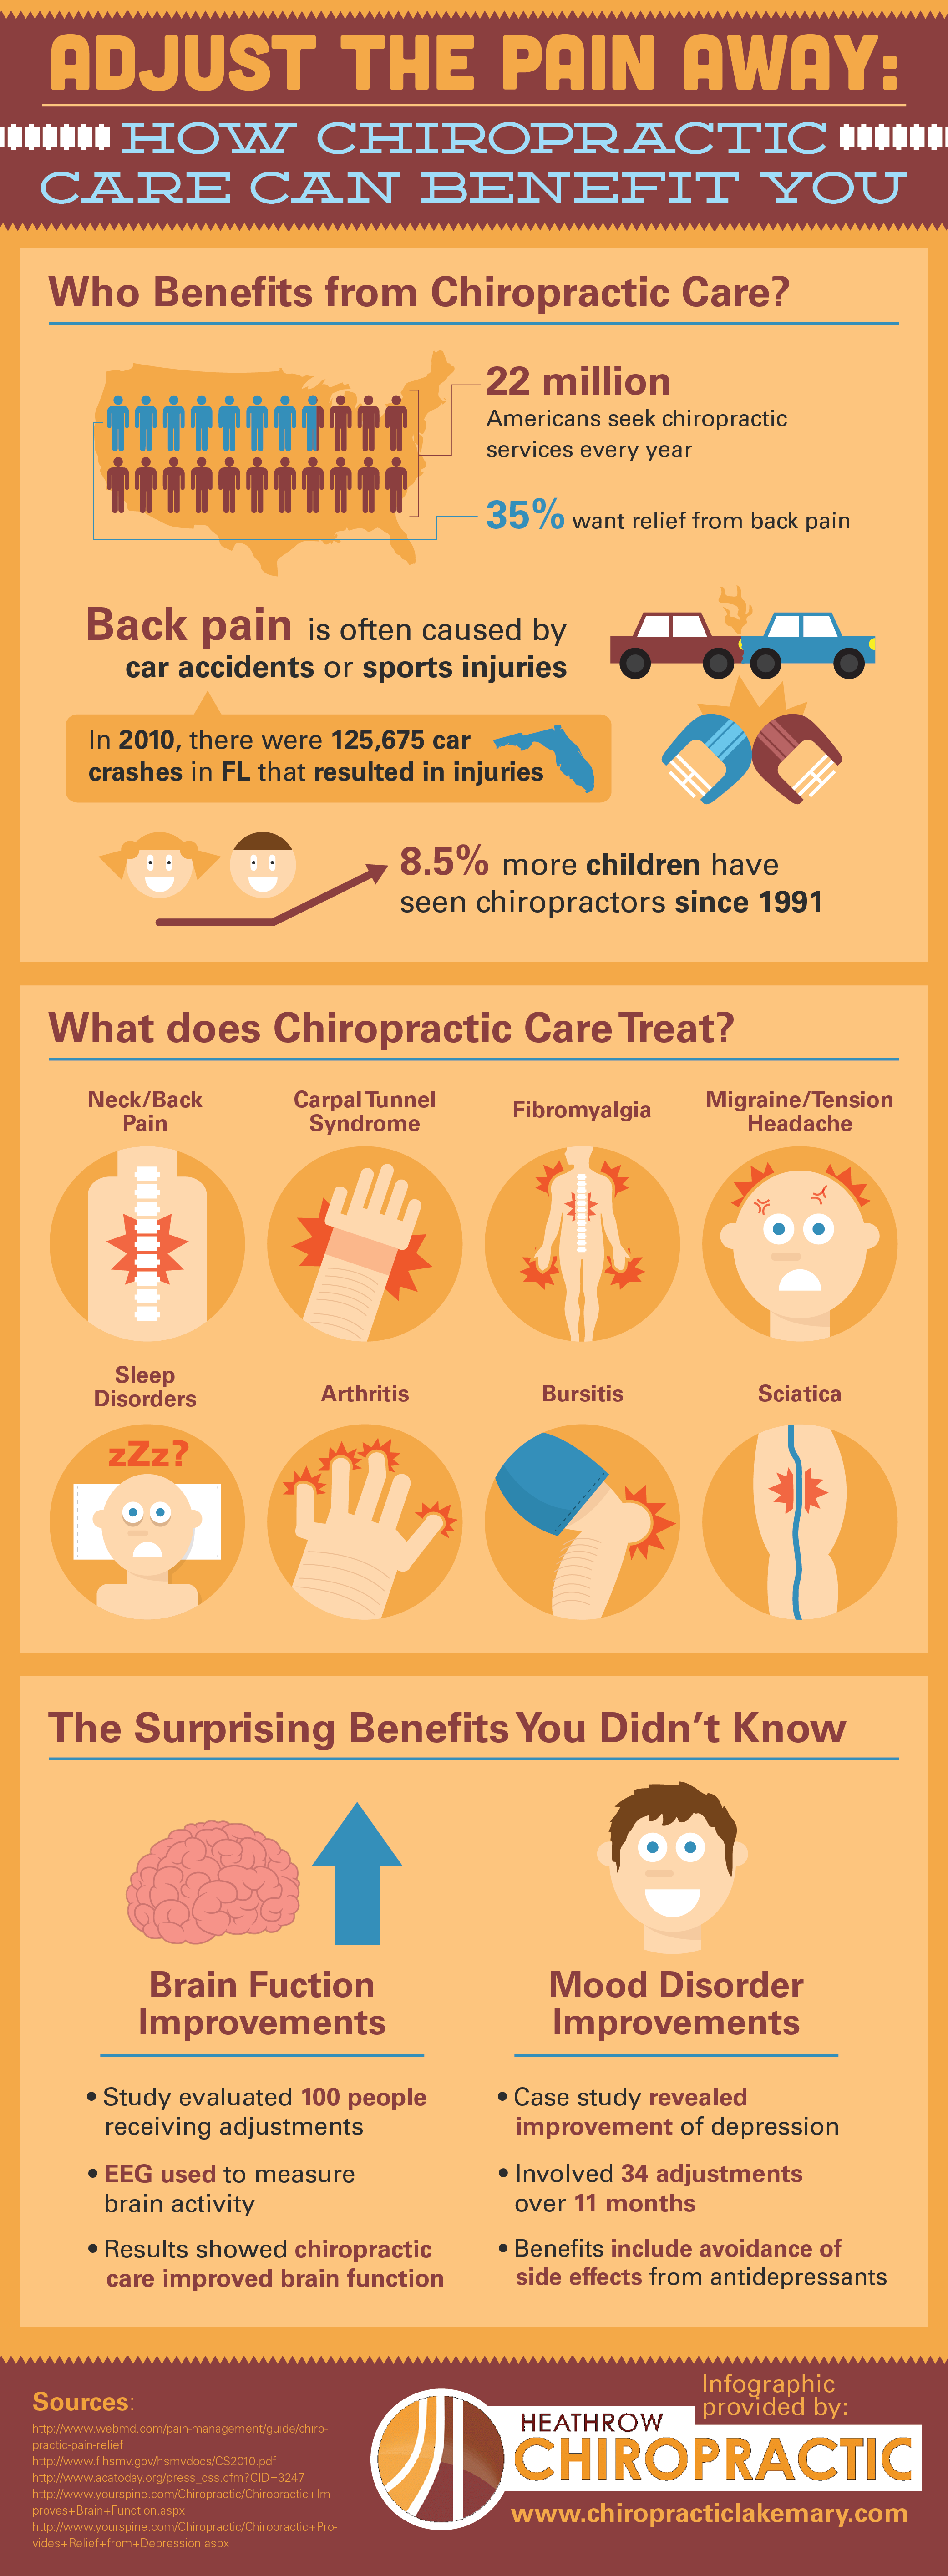 an alternative medicine chiropractic Chiropractic care focuses on the relationship between the body's structure—mainly spine—and how it functions, according to the national institutes of health's national center for complementary and alternative medicine.